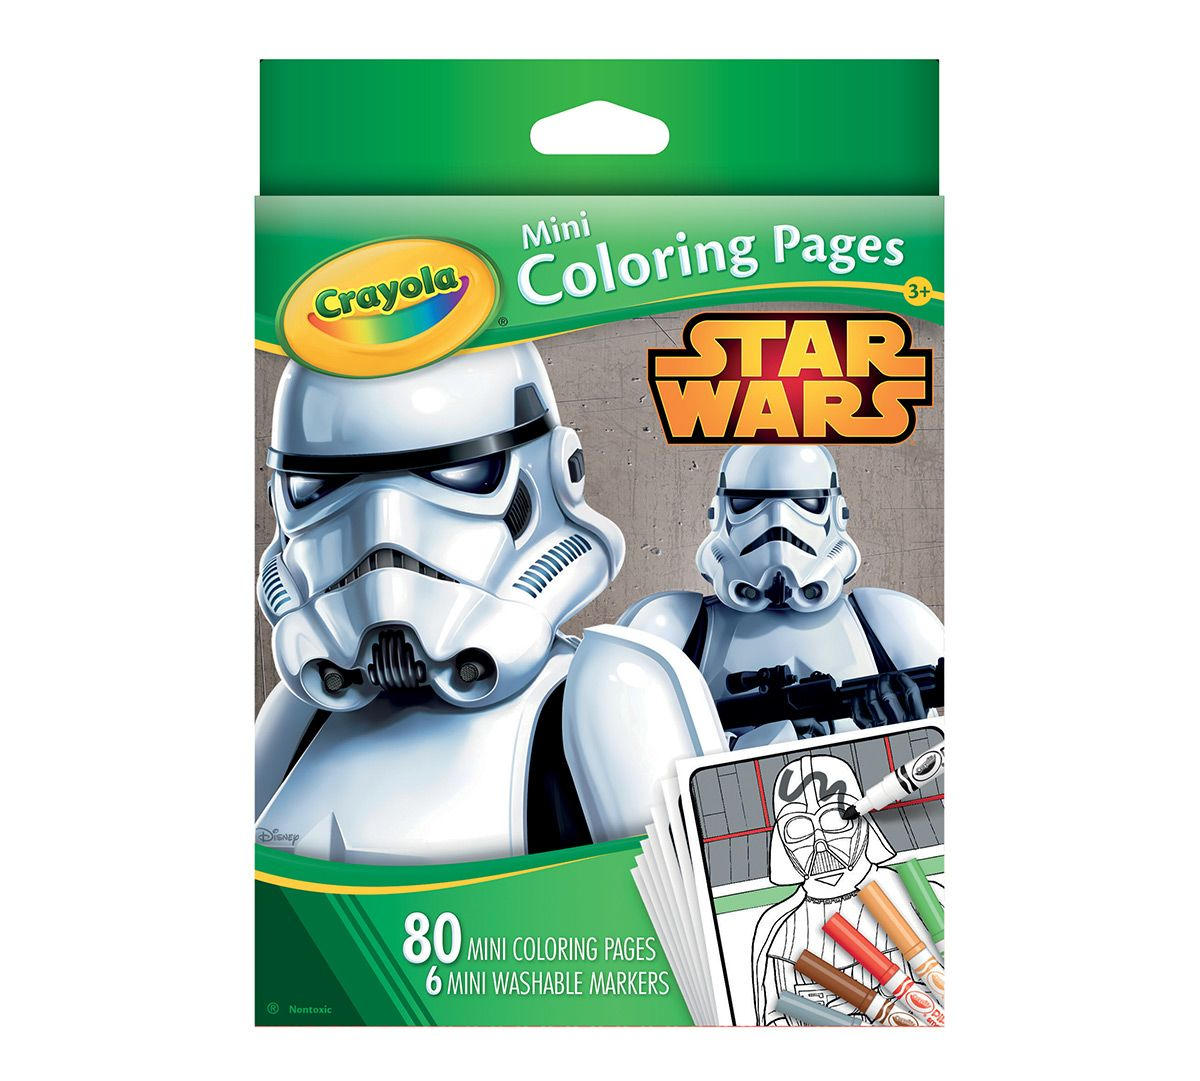 crayola coloring pages star wars - crayola celebrates star wars day with virtual designs